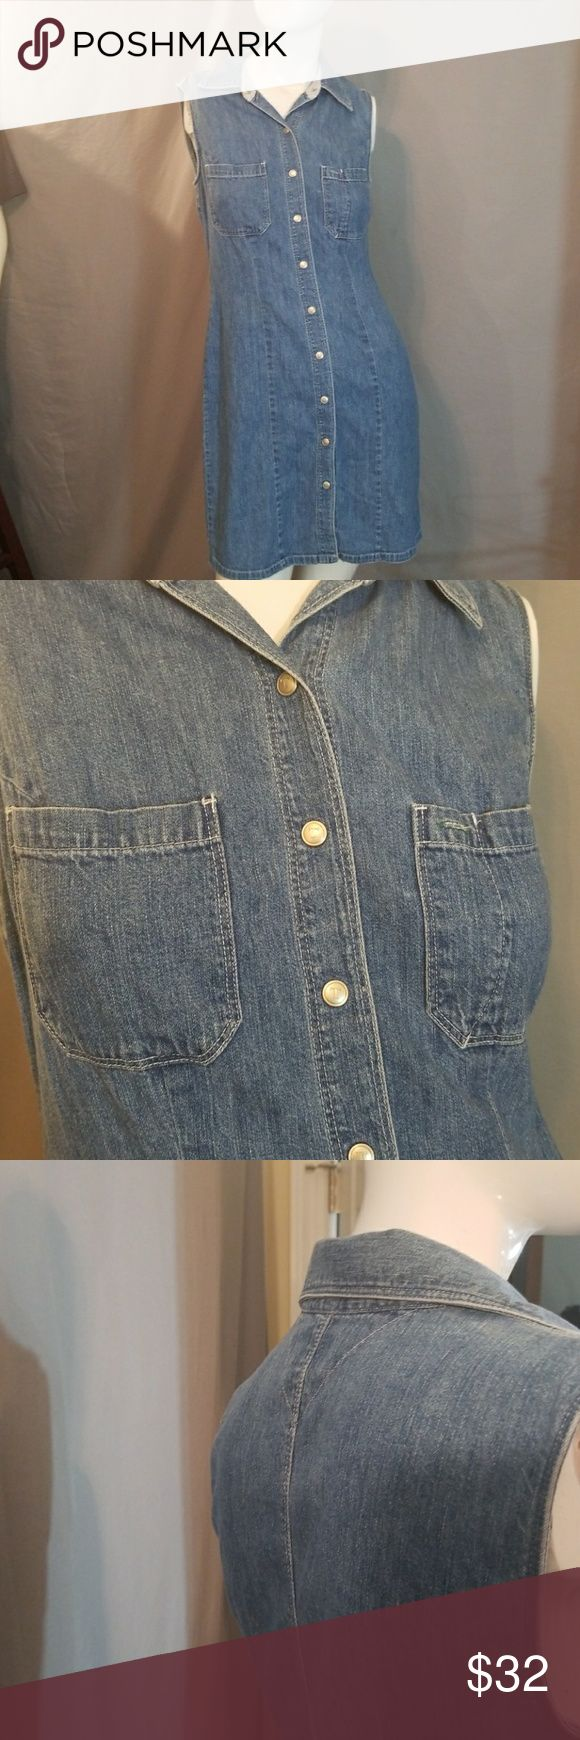 💚50% OFF💚VINTAGE TOMMY HILFIGER DENIM 💚50% OFF BUNDLES of 2+ THIS WEEKEND ONLY!💚Original TOMMY In Denim. Classy and comfy.    Why SHOP MY Closet? 💋Most NWT or Worn Once 💋Smoke/ Pet Free 💋OVER 450 🌟🌟🌟🌟🌟RATINGS & RISING! 💋TOP 10% Seller  💋TOP RATED 💋 FAST SHIPPER   💋BUNDLE DISCOUNT OF 20% 💋VIP REWARDS w/ EACH PURCHASE  💋QUESTIONS?? PLEASE ASK! ❤HAPPY POSHING!!! 💕 Tommy Hilfiger Dresses